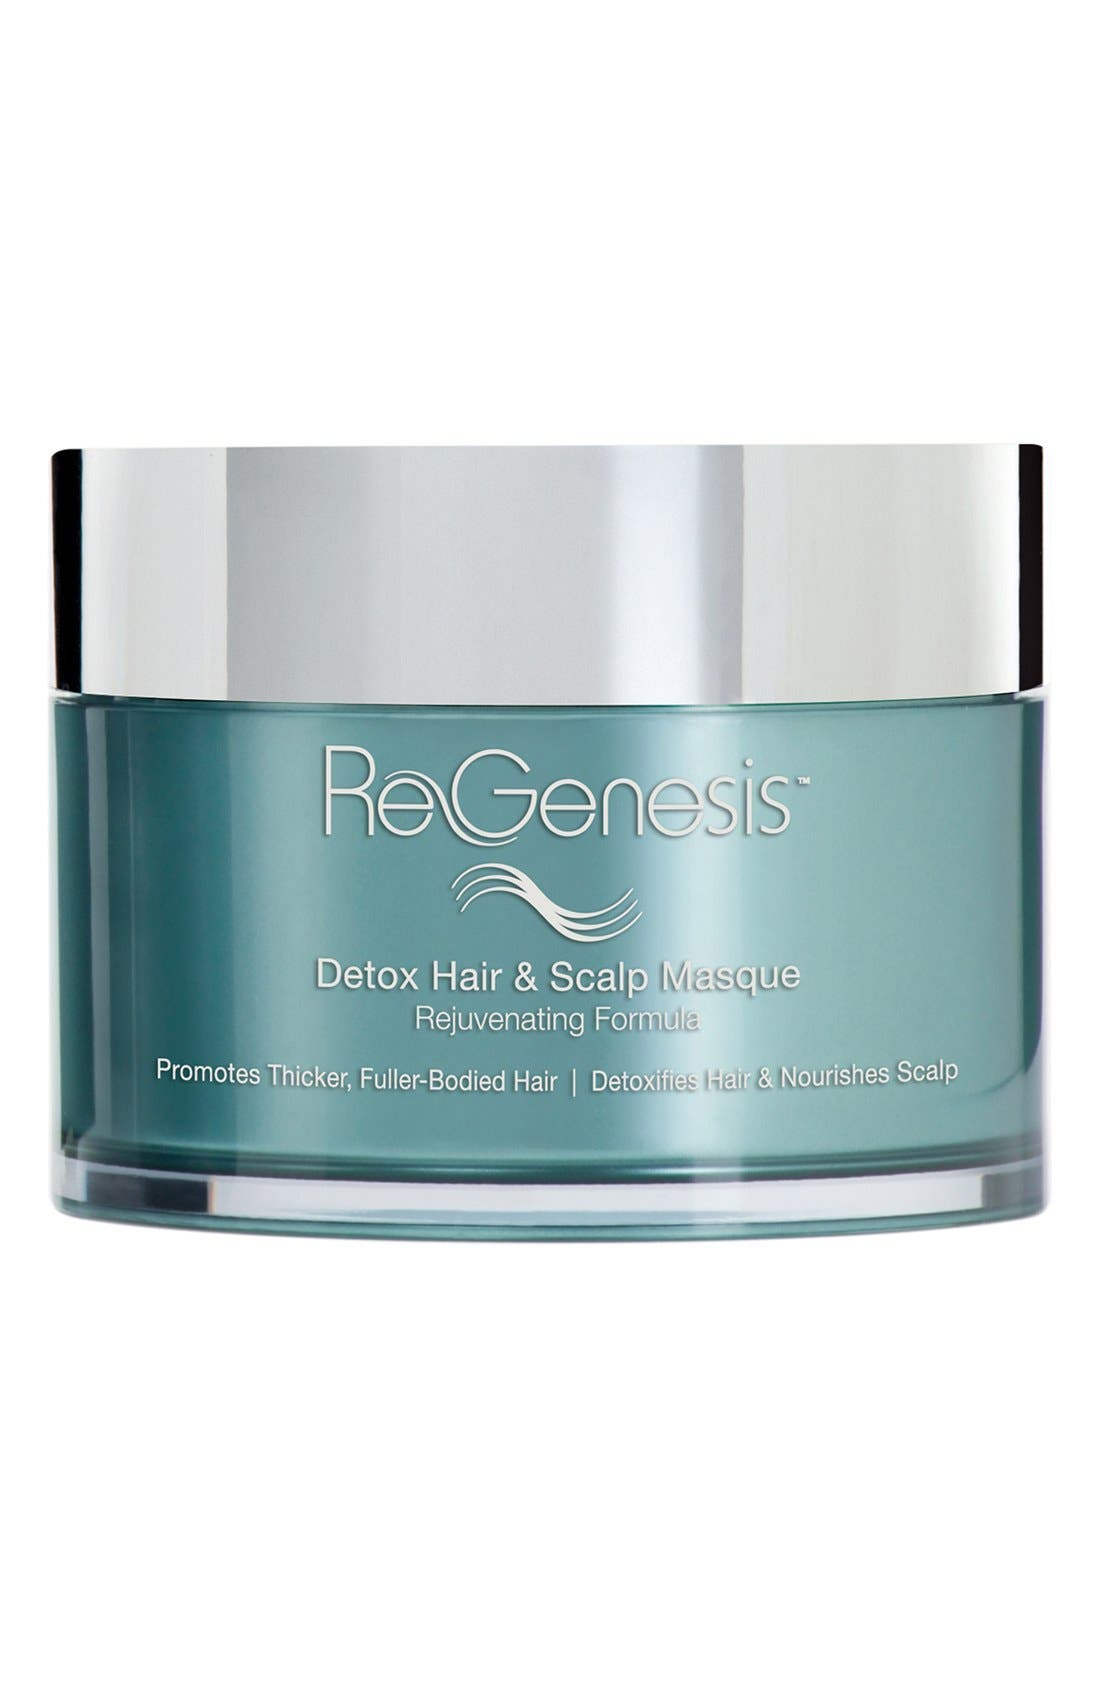 ReGenesis™ by RevitaLash® Detox Hair & Scalp Masque Rejuvenating Formula